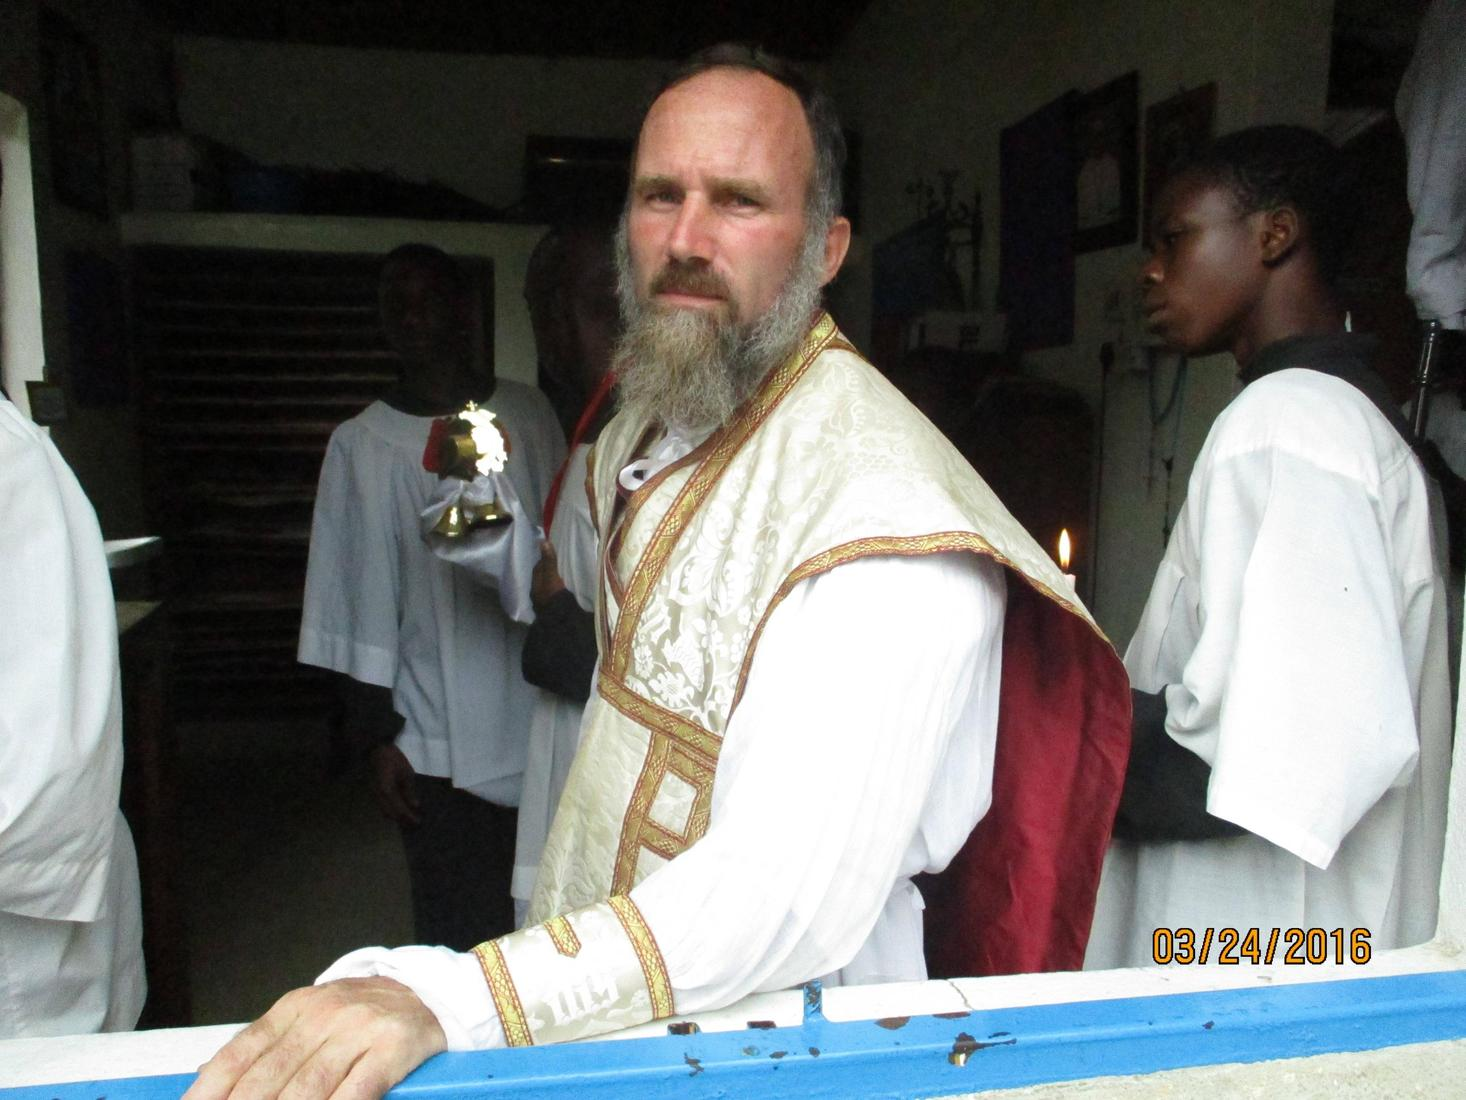 Photos from a traditional Catholic priest serving an African mission - 03 June